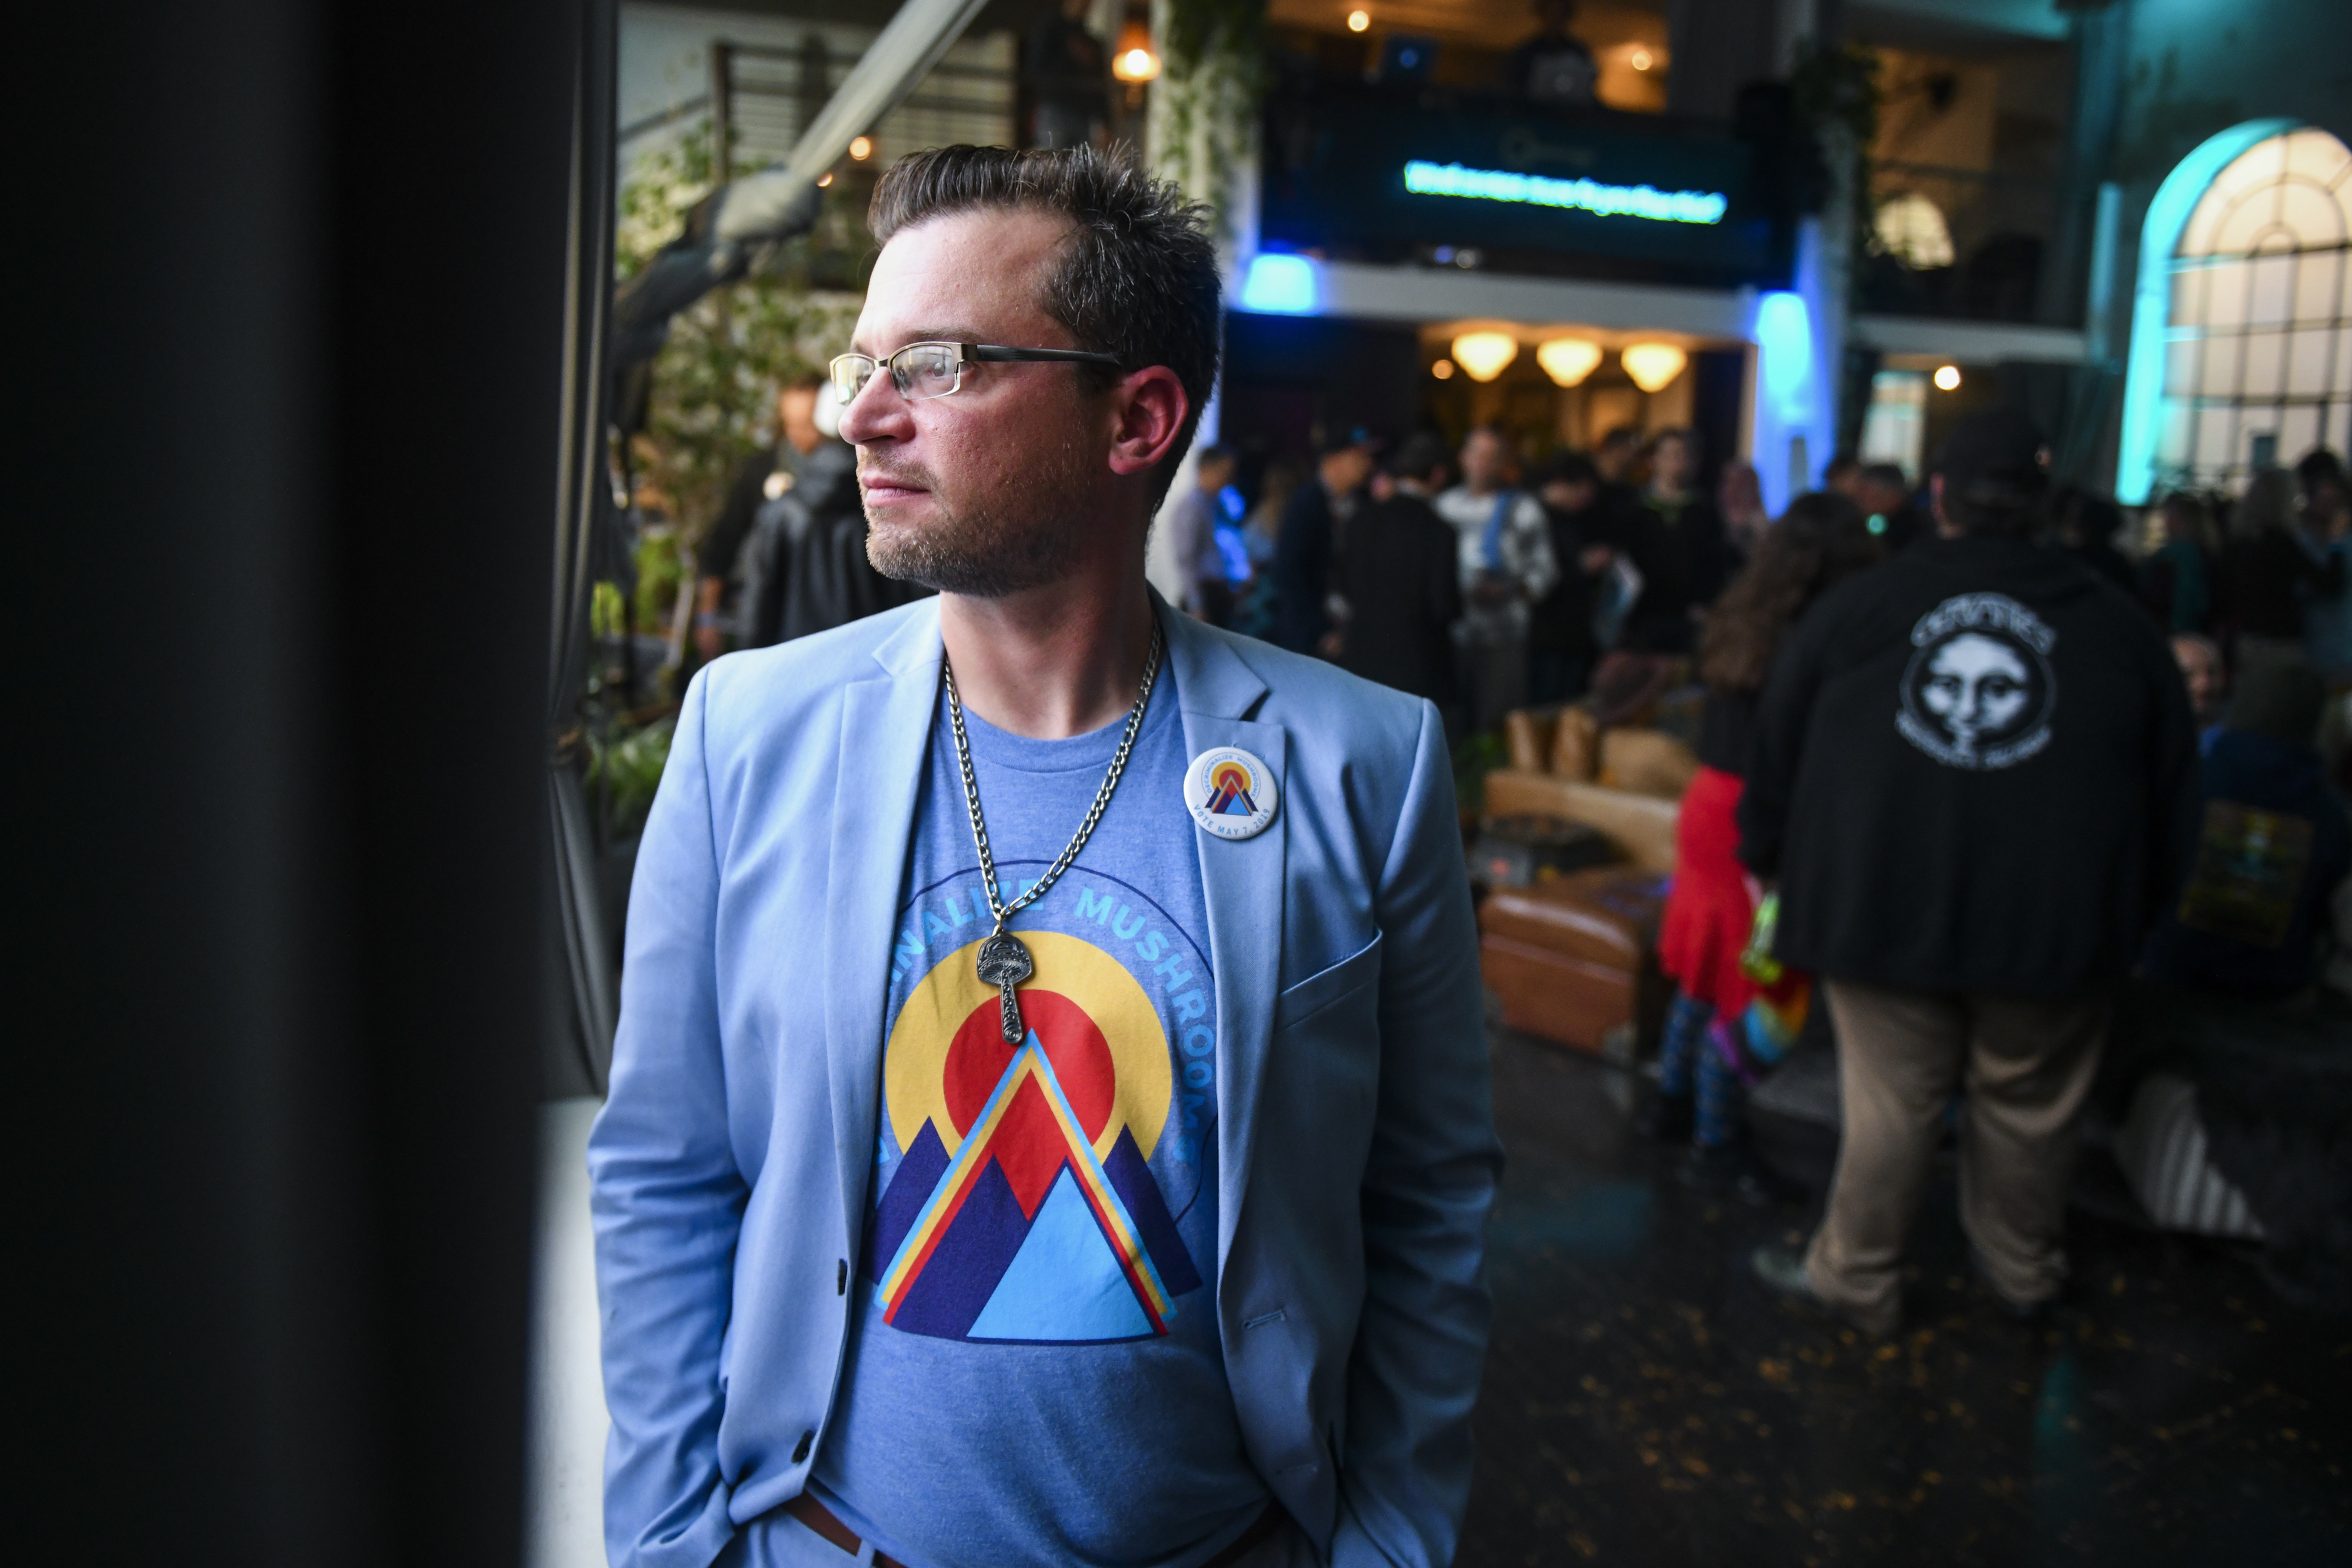 DENVER, CO - MAY 07: Campaign manager for the Denver Psilocybin Initiative Kevin Matthews poses for a portrait at an election watch party for the first bill in the nation that would decriminalize psilocybin mushrooms on May 7, 2019 in Denver, Colorado. If the bill passes, it would make possession, use or cultivation of psilocybin mushrooms by people aged 21 and older the lowest law enforcement priority in the city. (Photo by Michael Ciaglo/Getty Images)